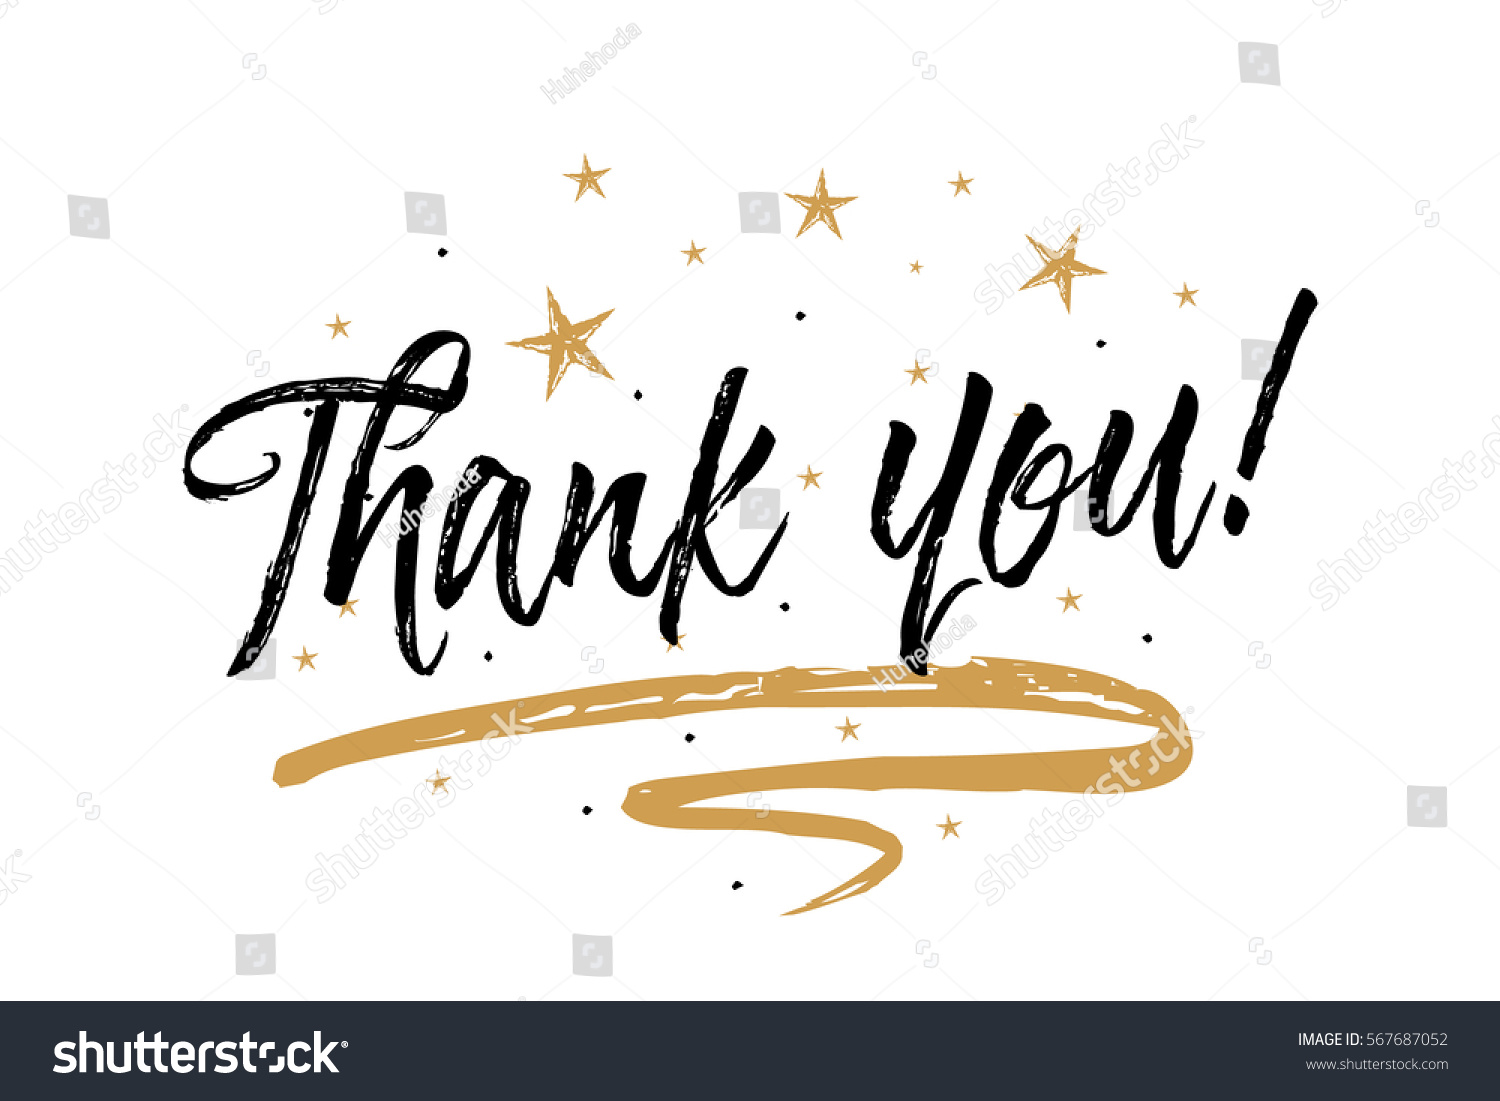 online image   photo editor shutterstock editor animated thank you clipart for powerpoint free download Animated Glitter Graphics Thank You